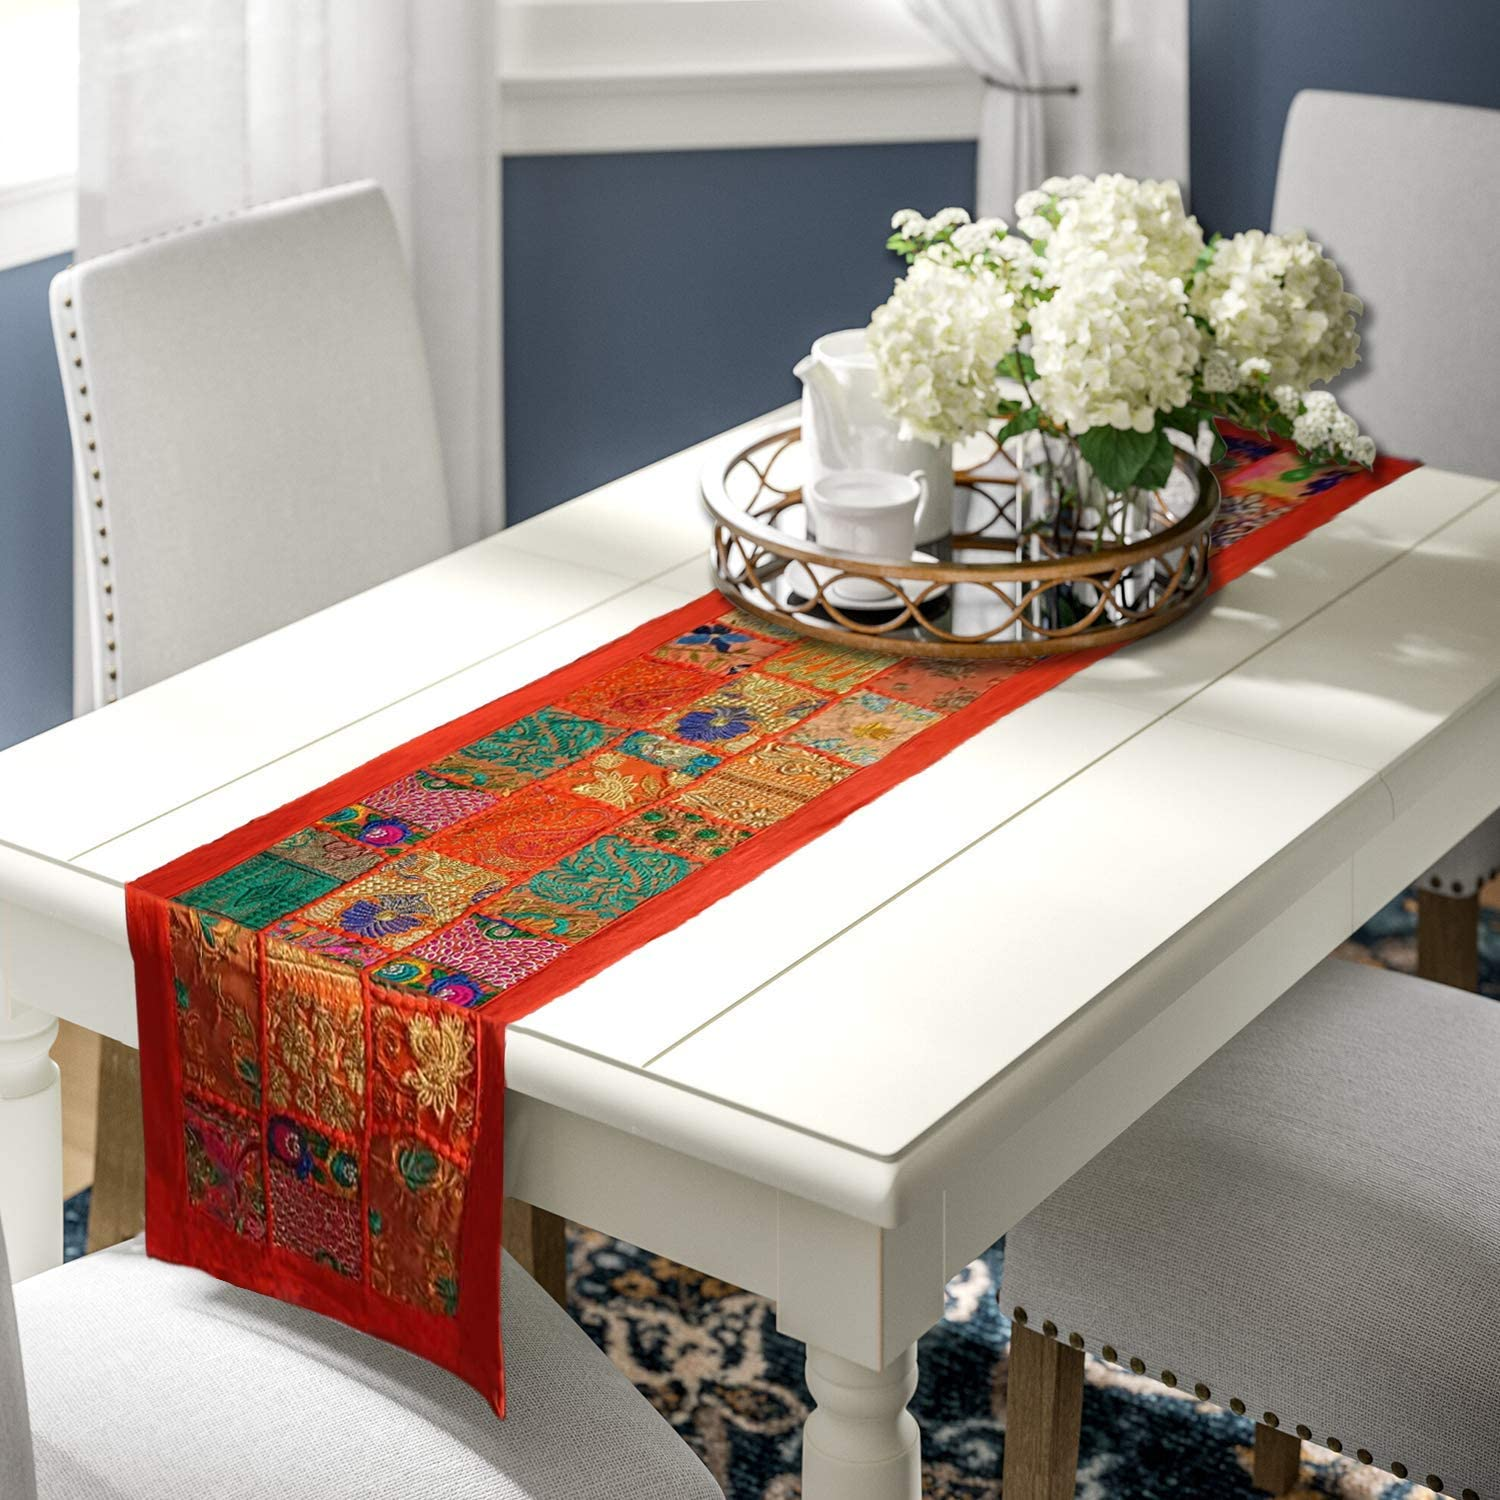 Essencea Rajasthani Style Table Runner Cotton   15x72 inches   Orange   Home Decoration, Table Decoration, Events, Party